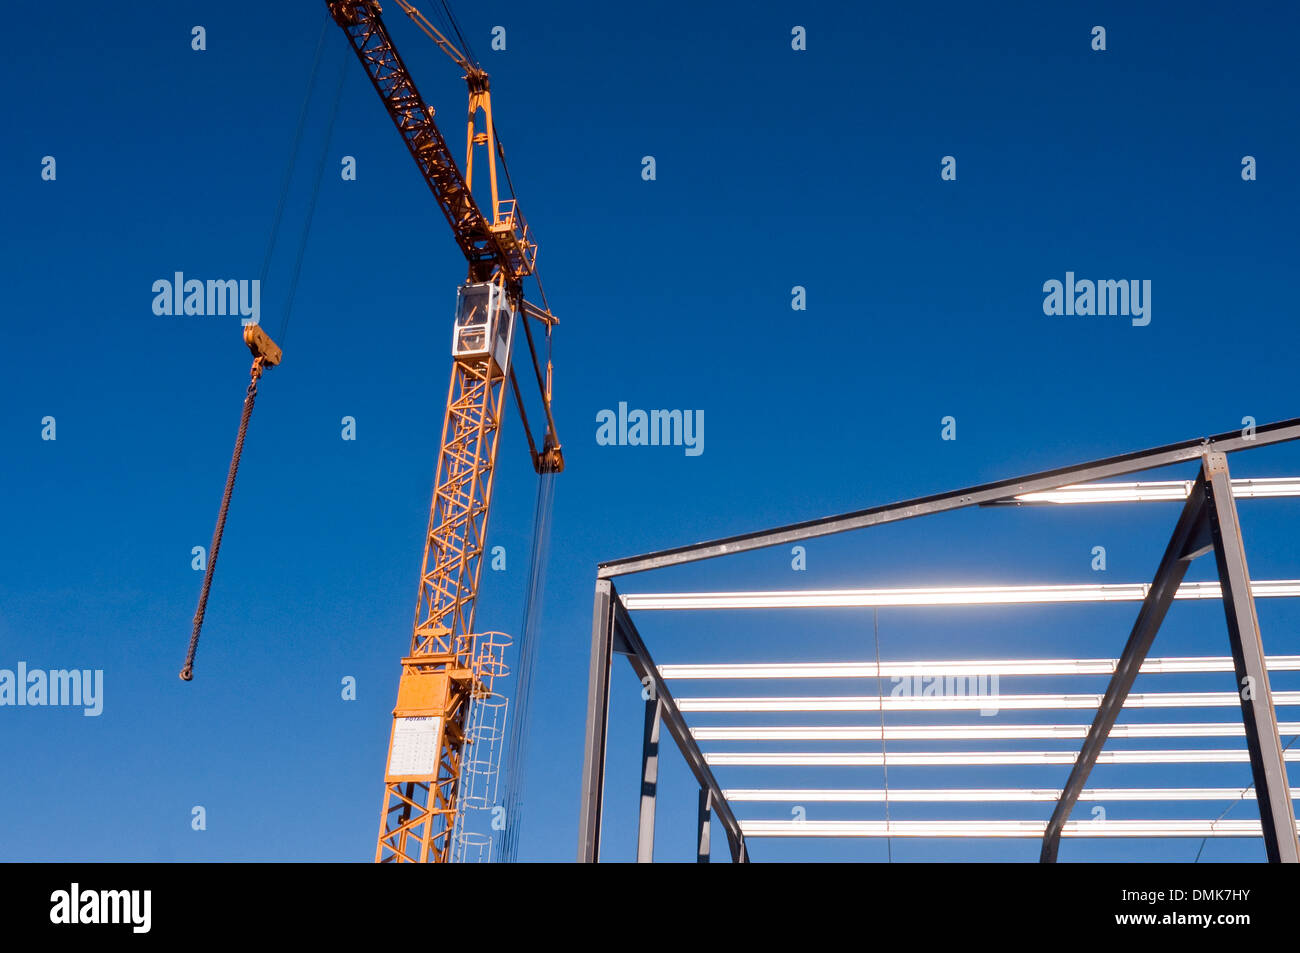 Tower crane and new warehouse roofing steelwork / factory building site - France. - Stock Image